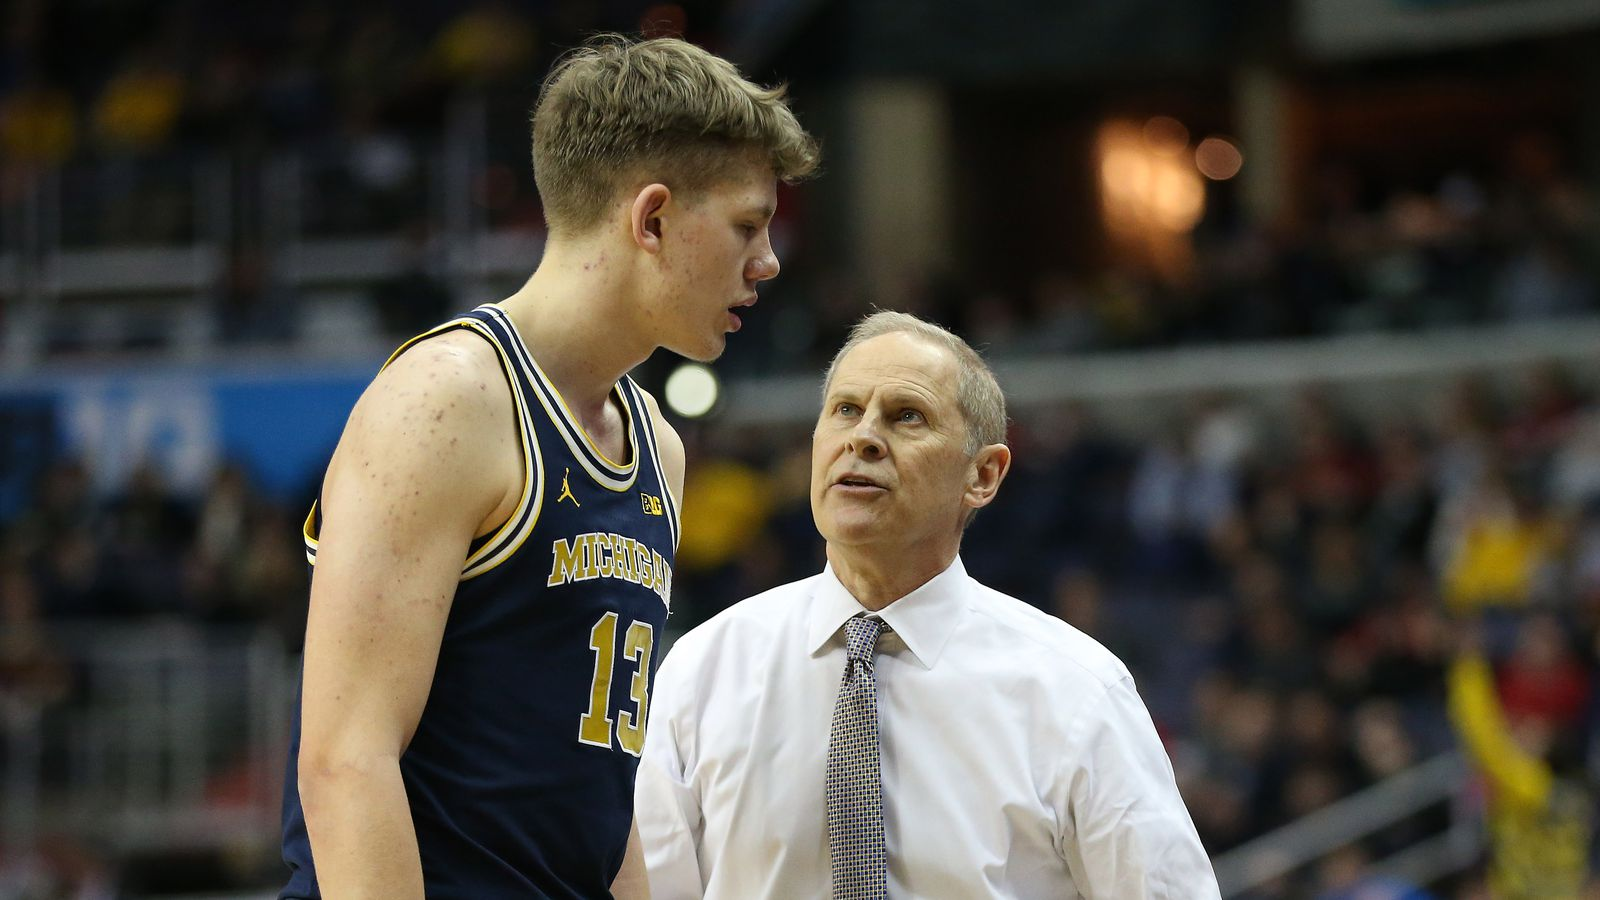 john beilein - photo #7